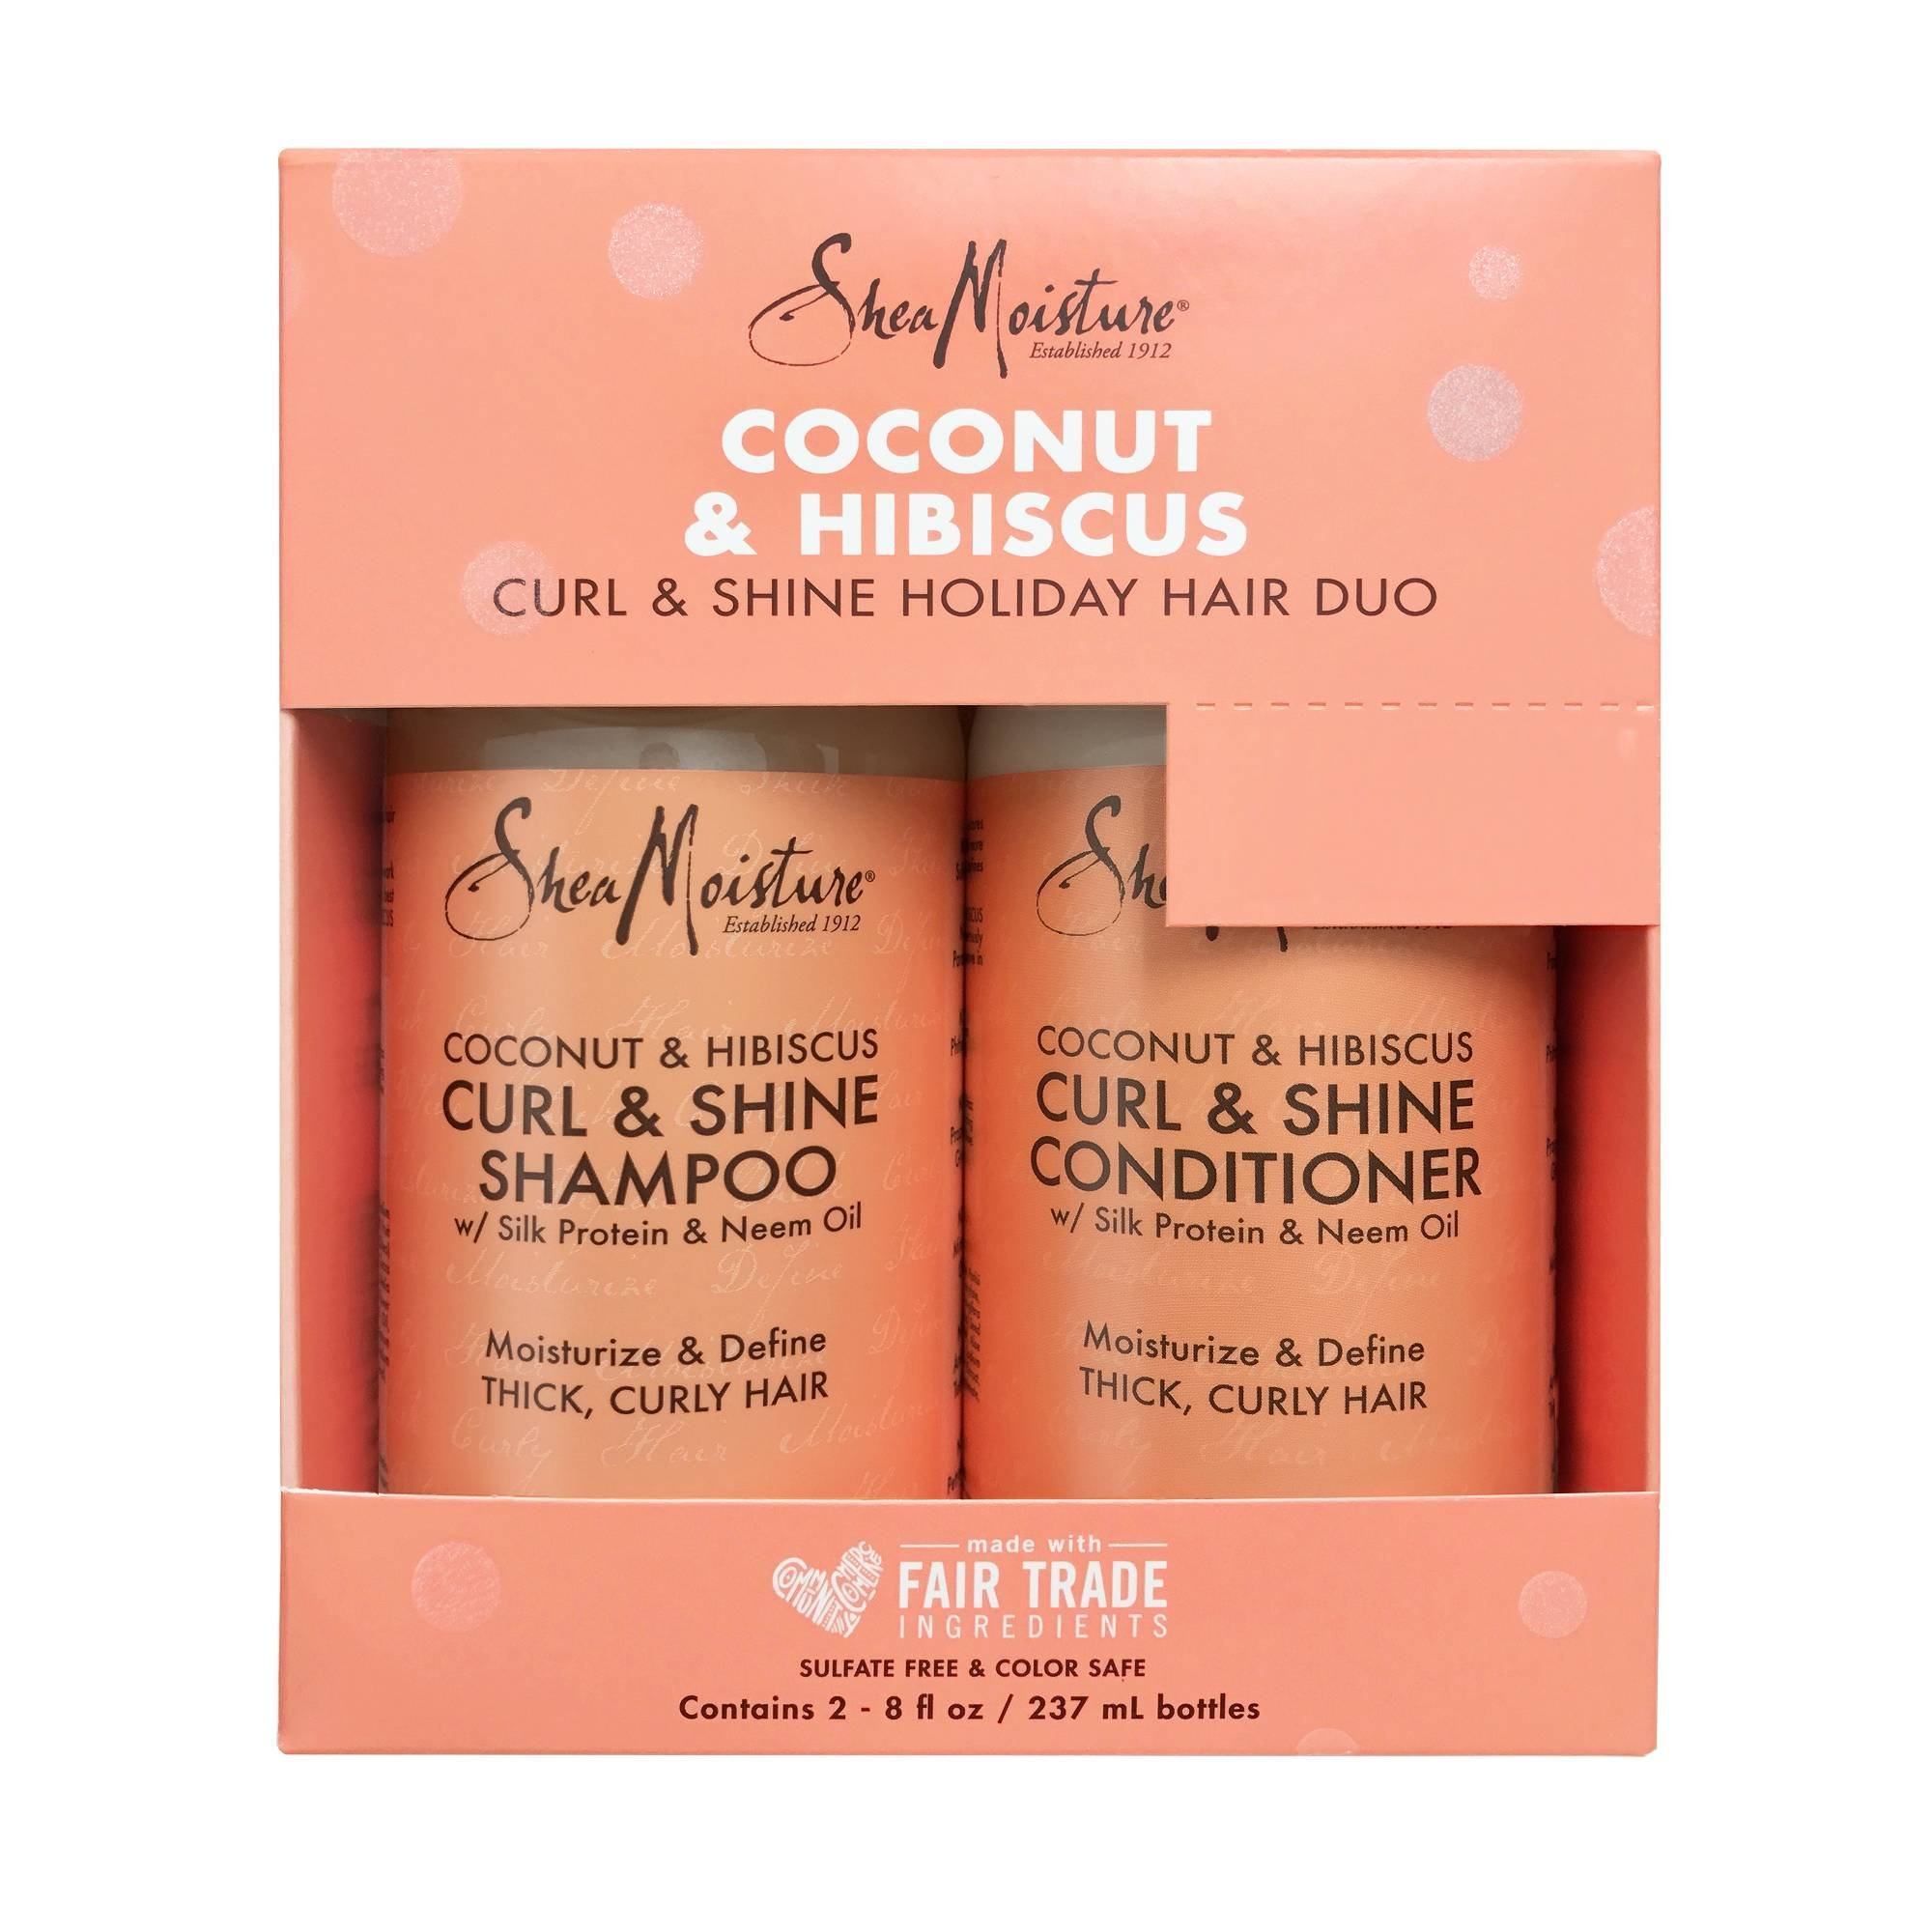 SheaMoisture Coconut & Hibiscus Shampoo & Conditioner Holiday Kit , pack of 1 by Shea Moisture